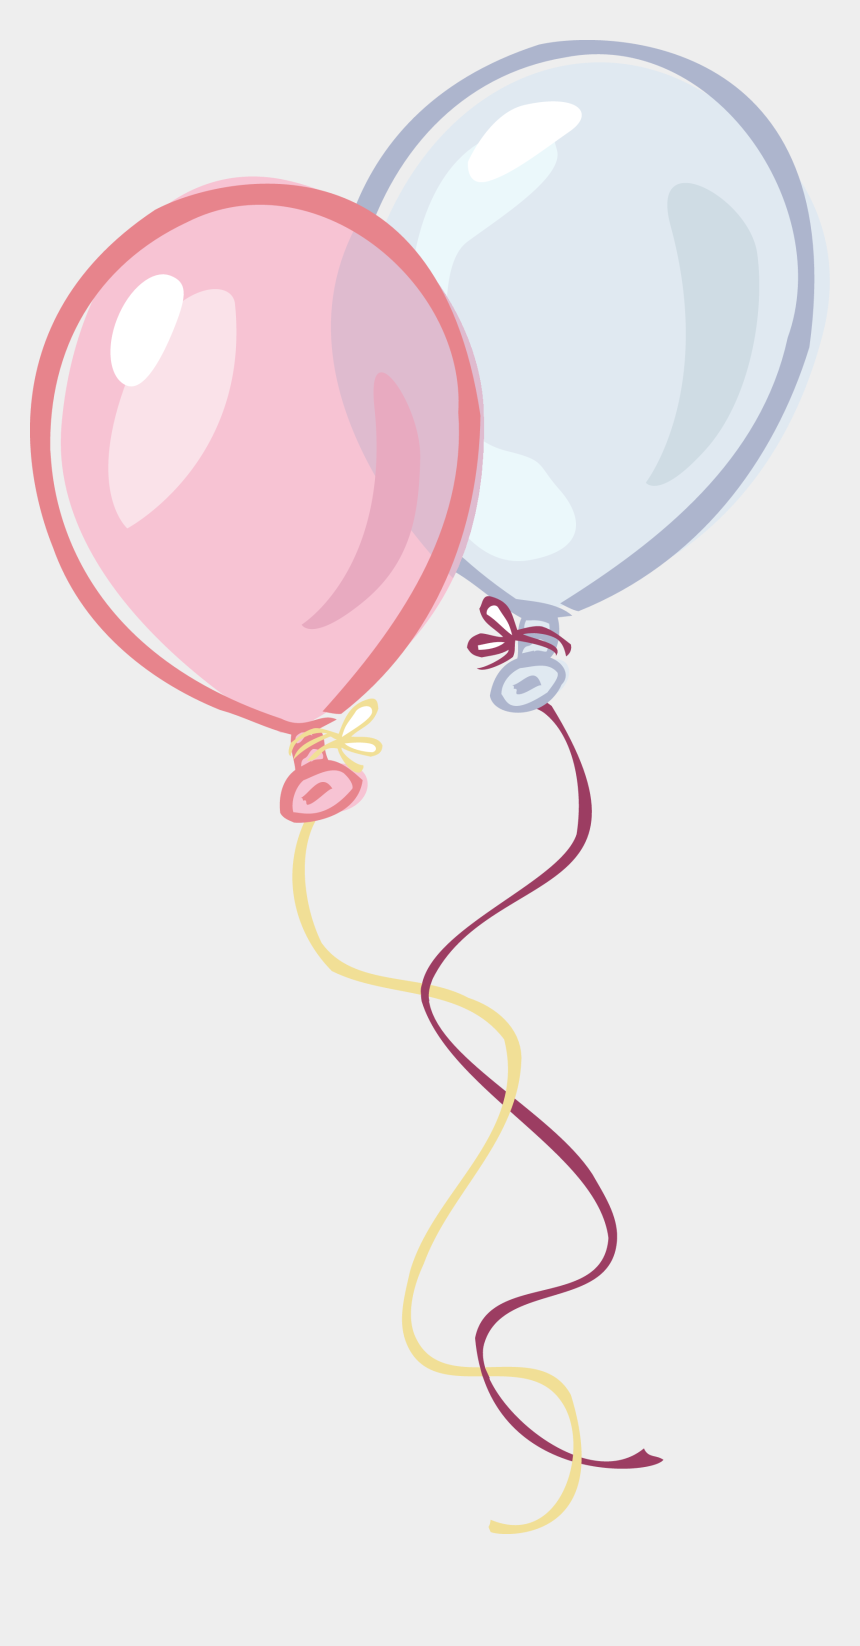 birthday balloons clip art, Cartoons - Pink And Blue Birthday - Cartoon Birthday Balloon Png